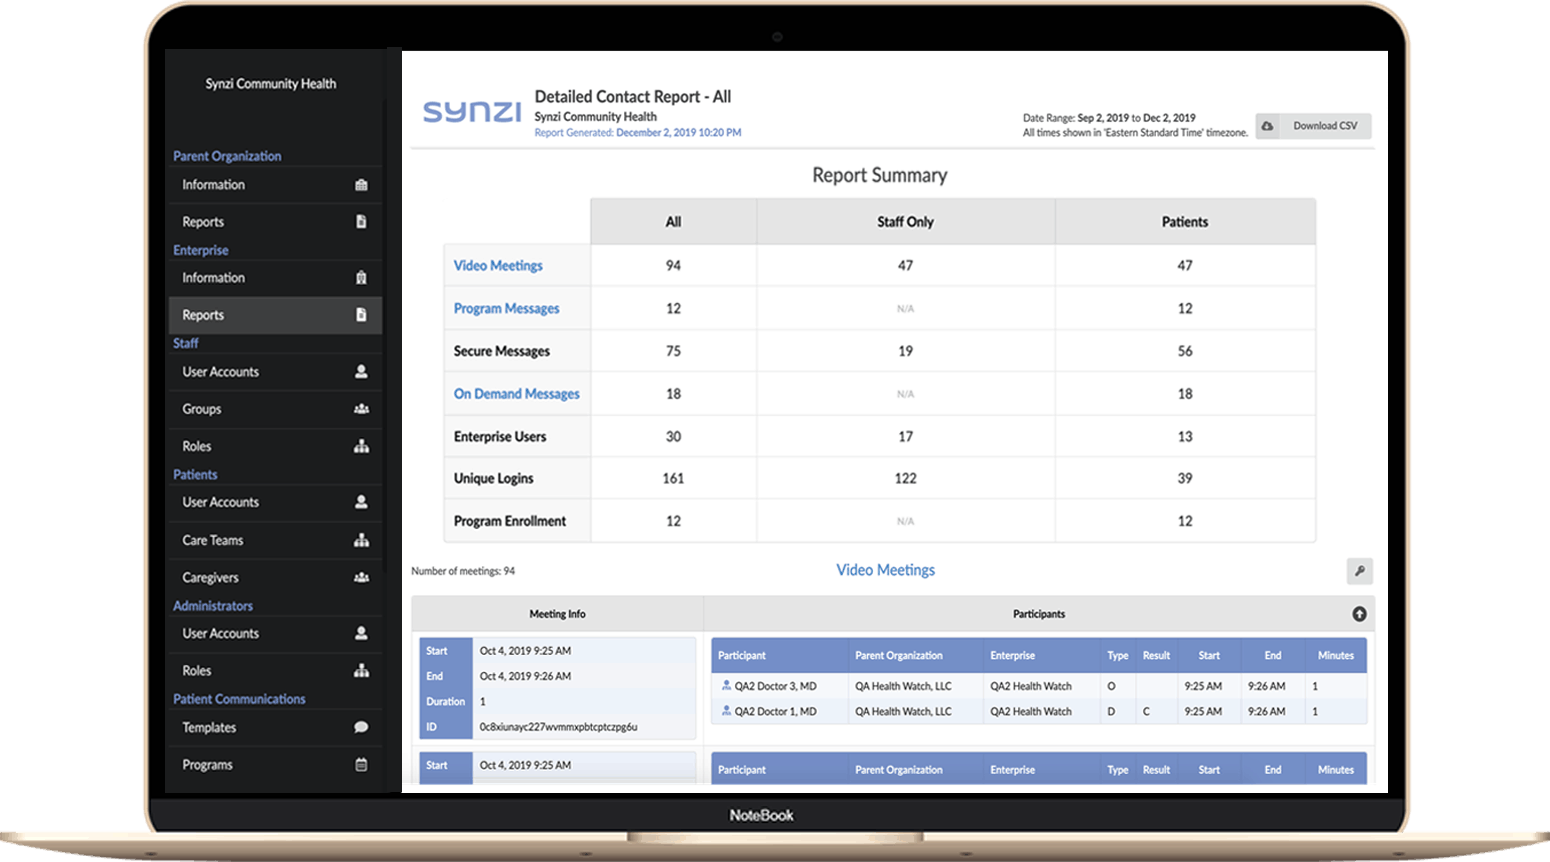 Features easy-to-understand reports and assessments on patients' experience, condition, communicative activity and engagement. Allows your Administrator to easily upload csv data into data visualization tools